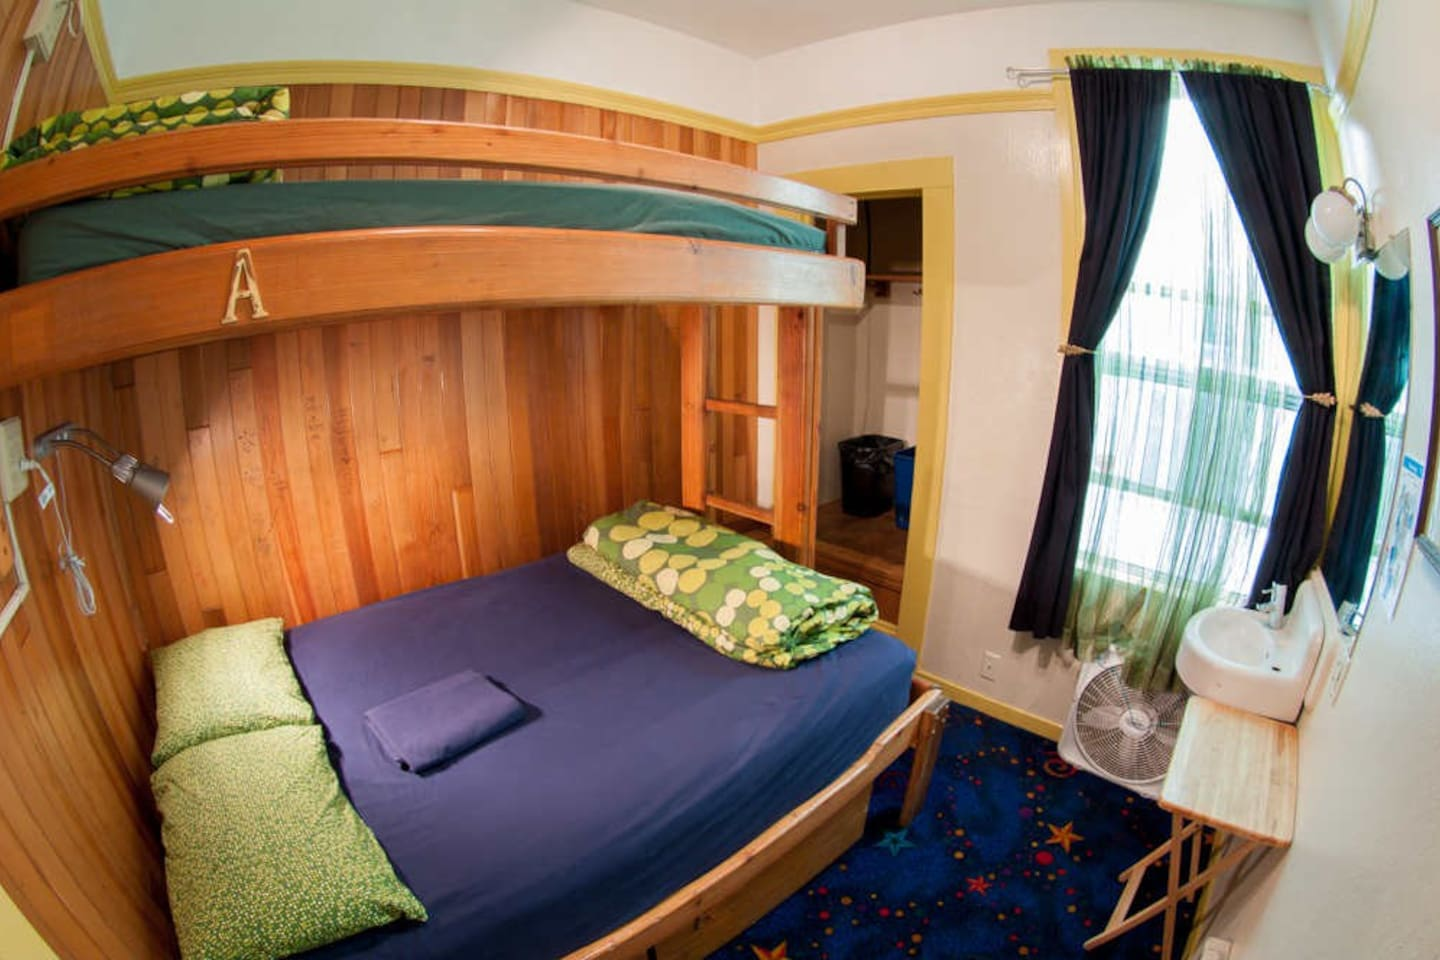 The room has one bunk bed with a double bed on the bottom and a single bed on top